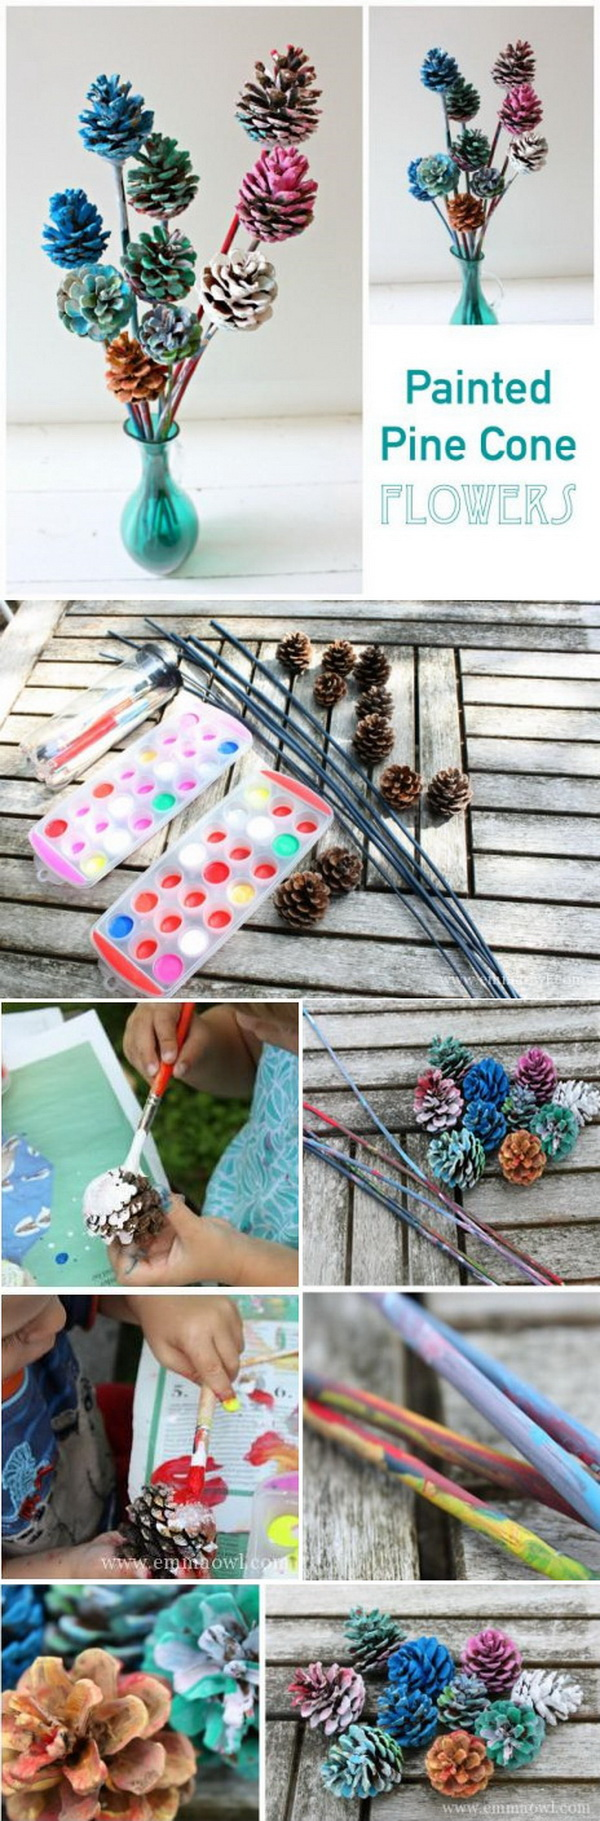 Beautiful Painted Pine Cone Flowers. Decorating with pine cones isn't only for the winter holidays. These pine cone flowers customized with colorful paint make the best decorations for the spring or summer season!